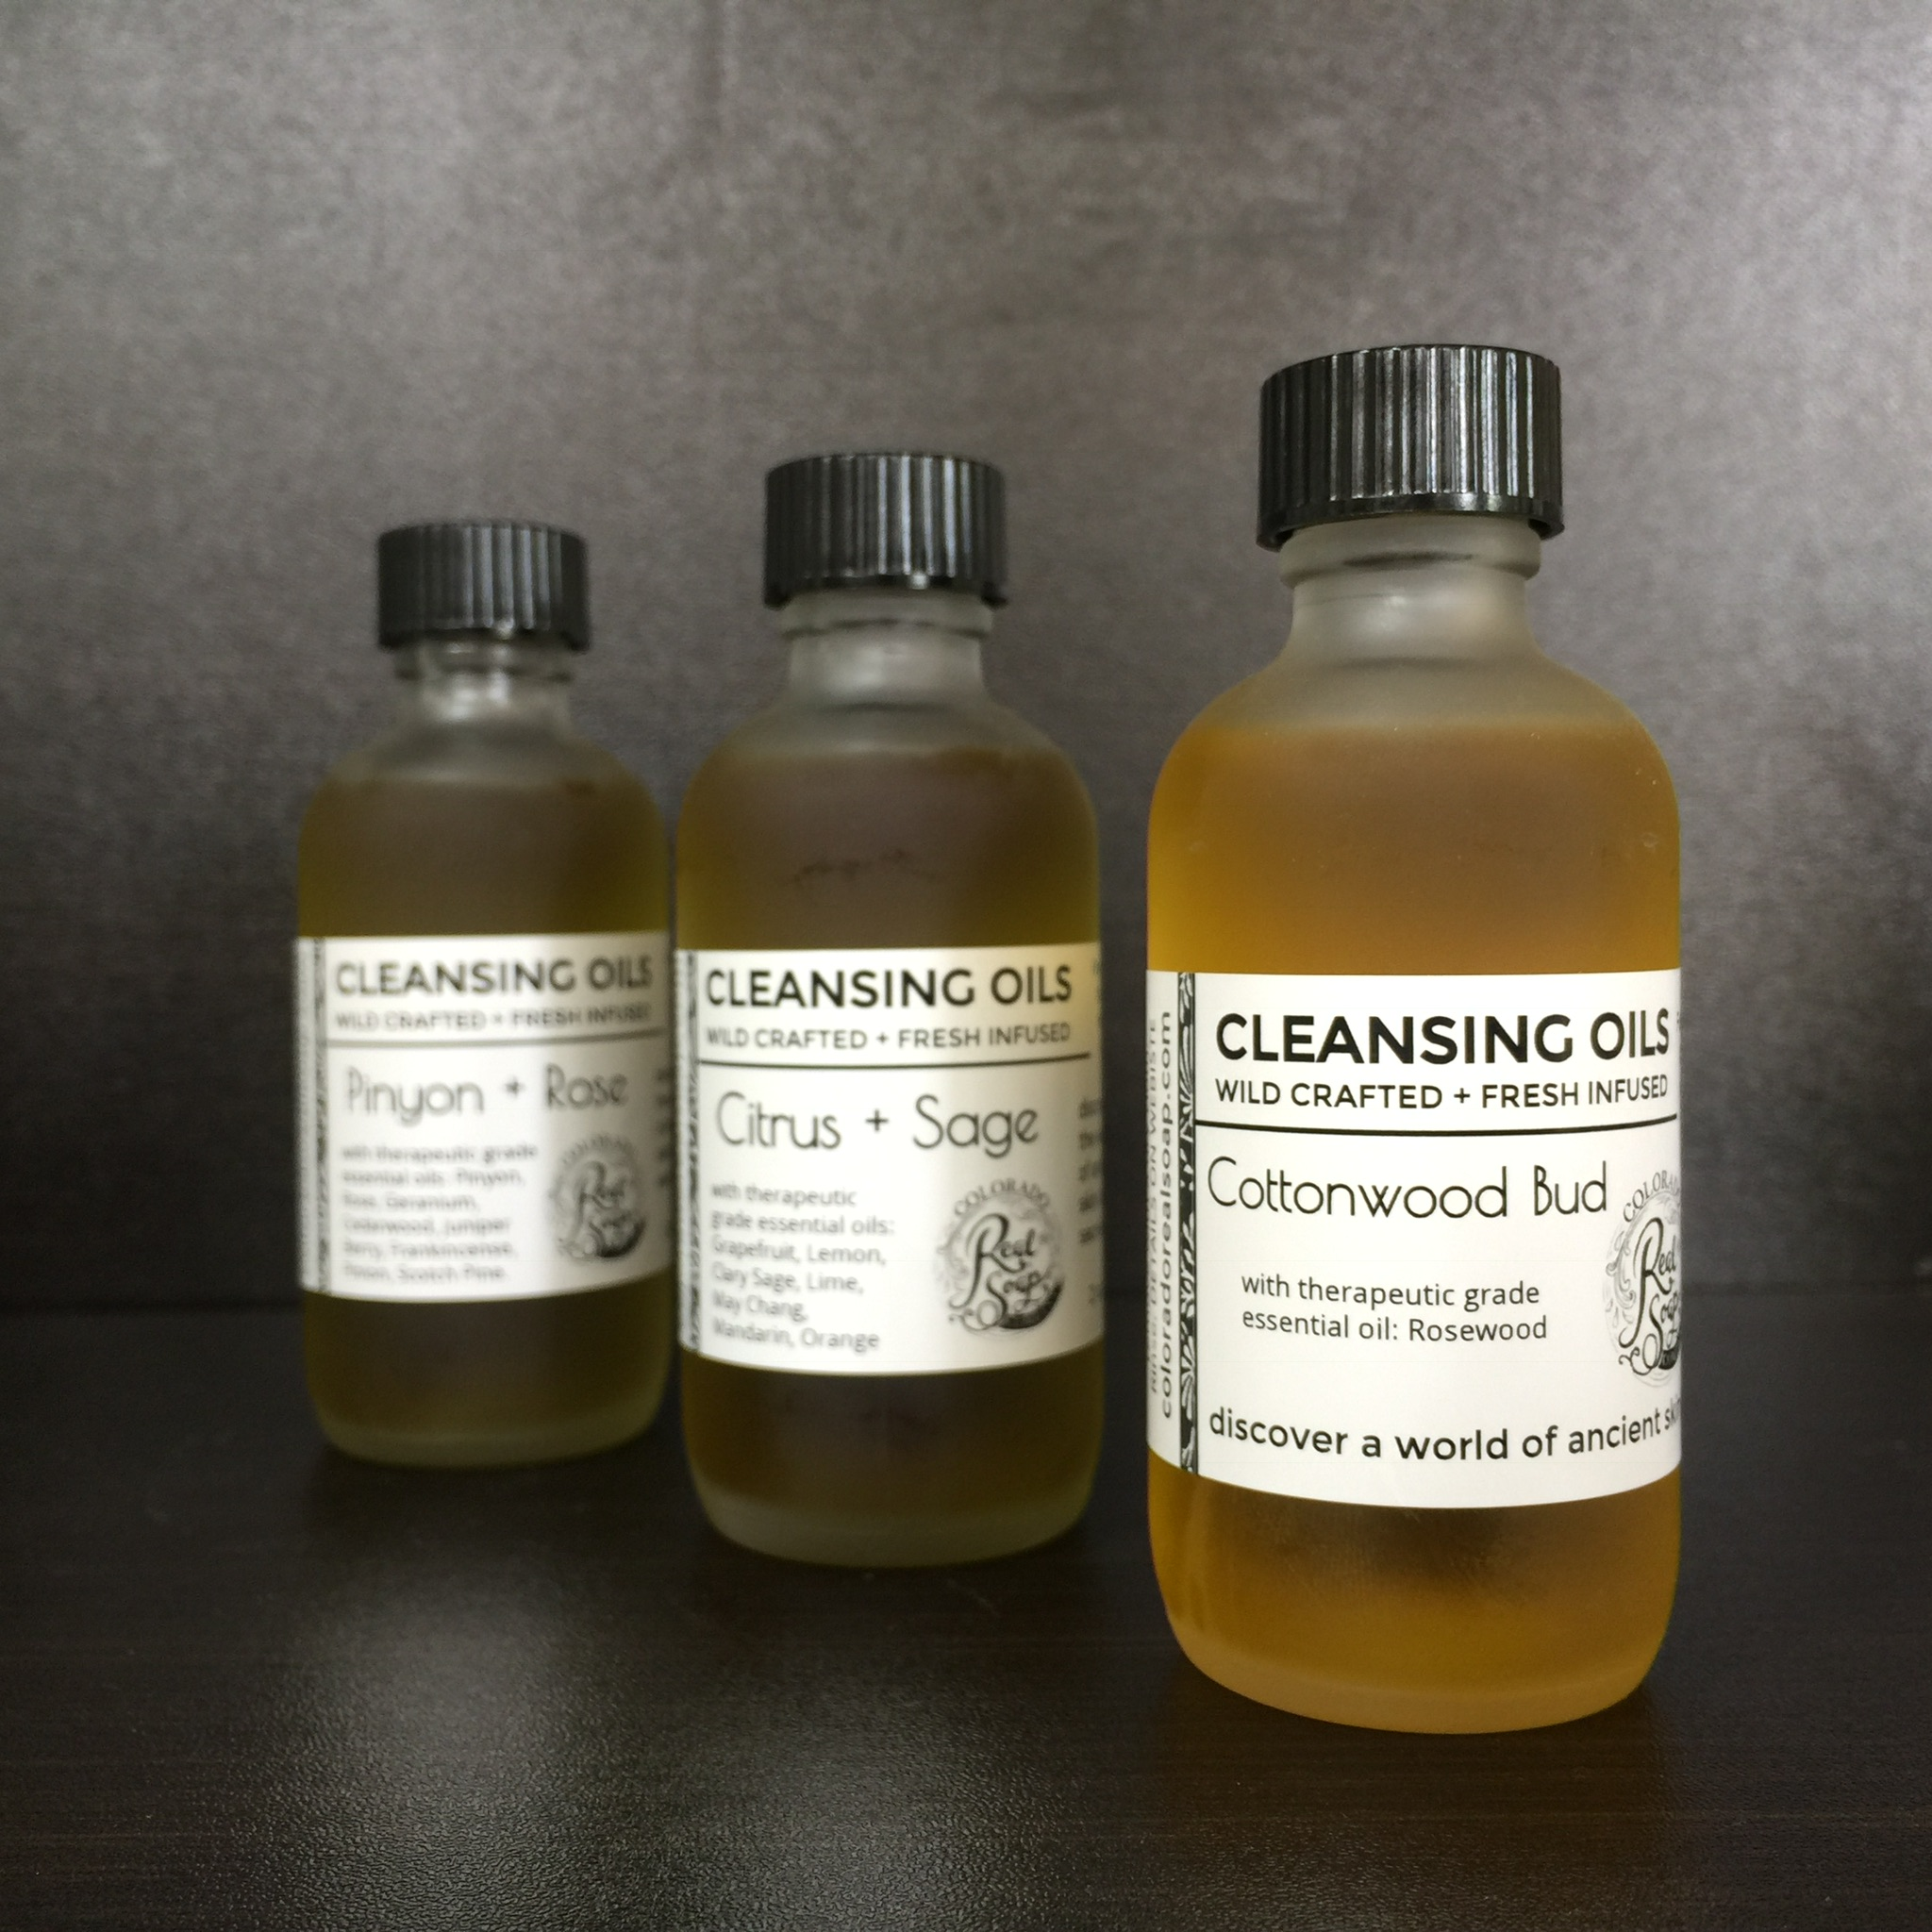 - OIL CLEANSING FOR FACES